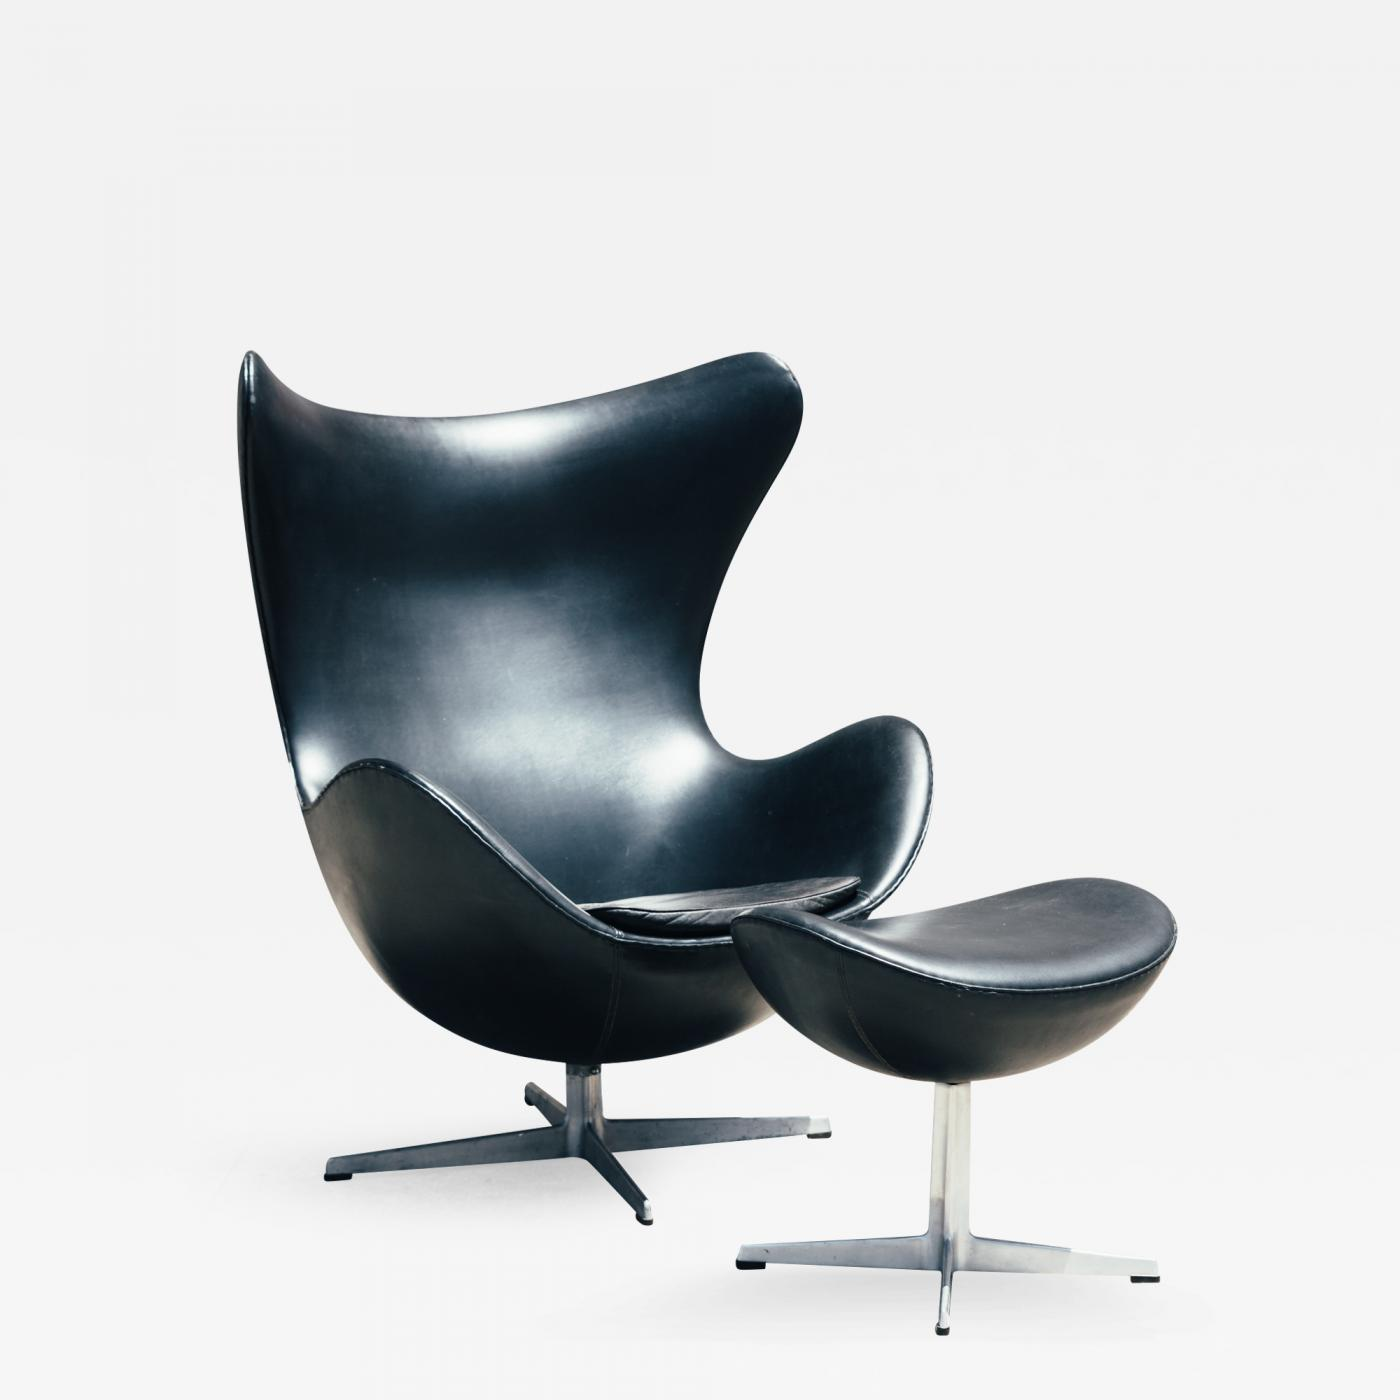 Arne jacobsen 1960s arne jacobsen egg chair and ottoman for Egg chair jacobsen